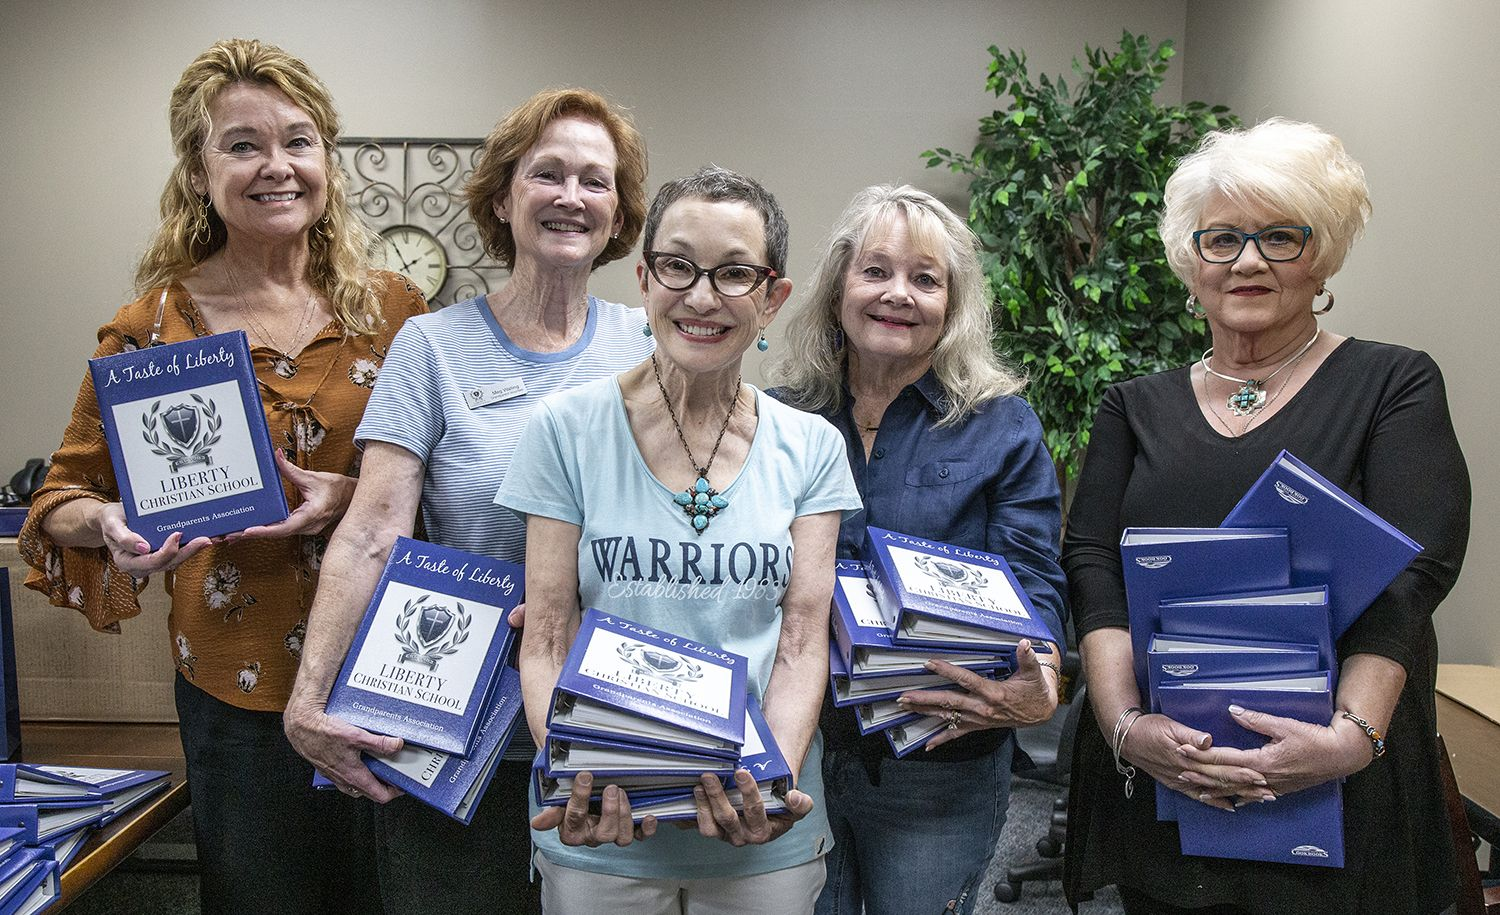 Grandparents Association Cookbook Committee members get ready to distribute cookbooks